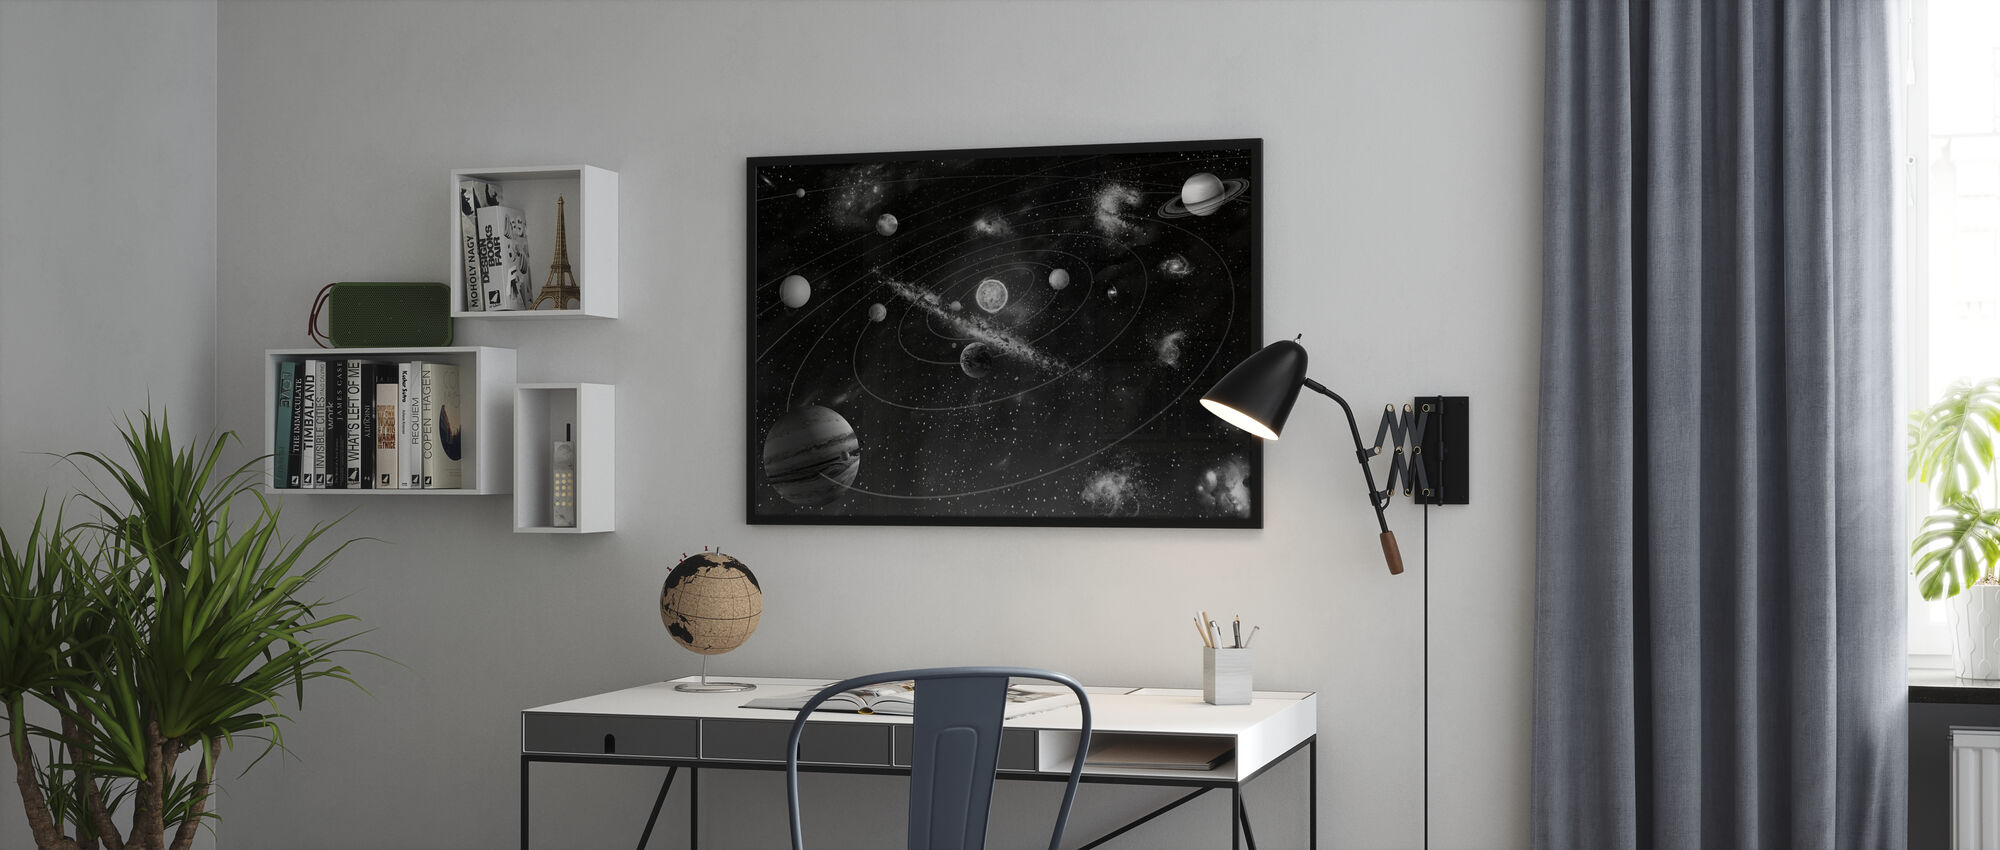 Solar System - b/w - Framed print - Office